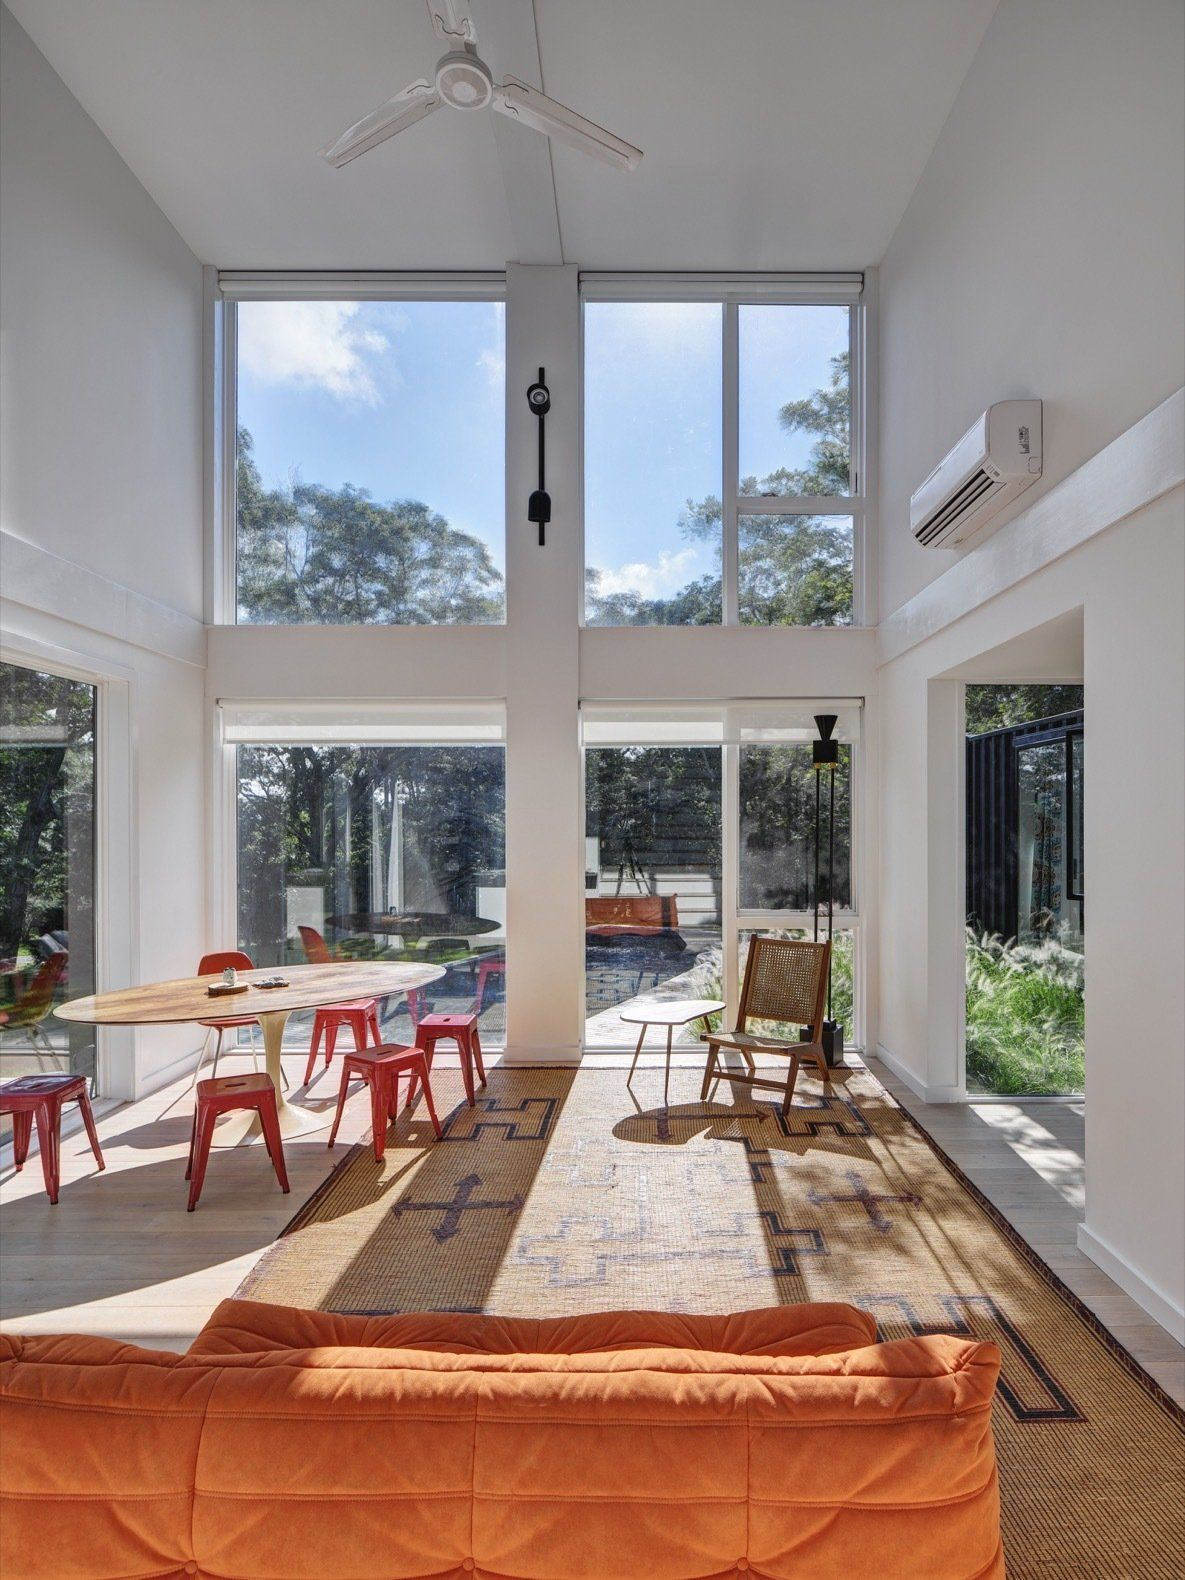 The living area is a double-height space with glass doors and windows and a simple and cozy decor